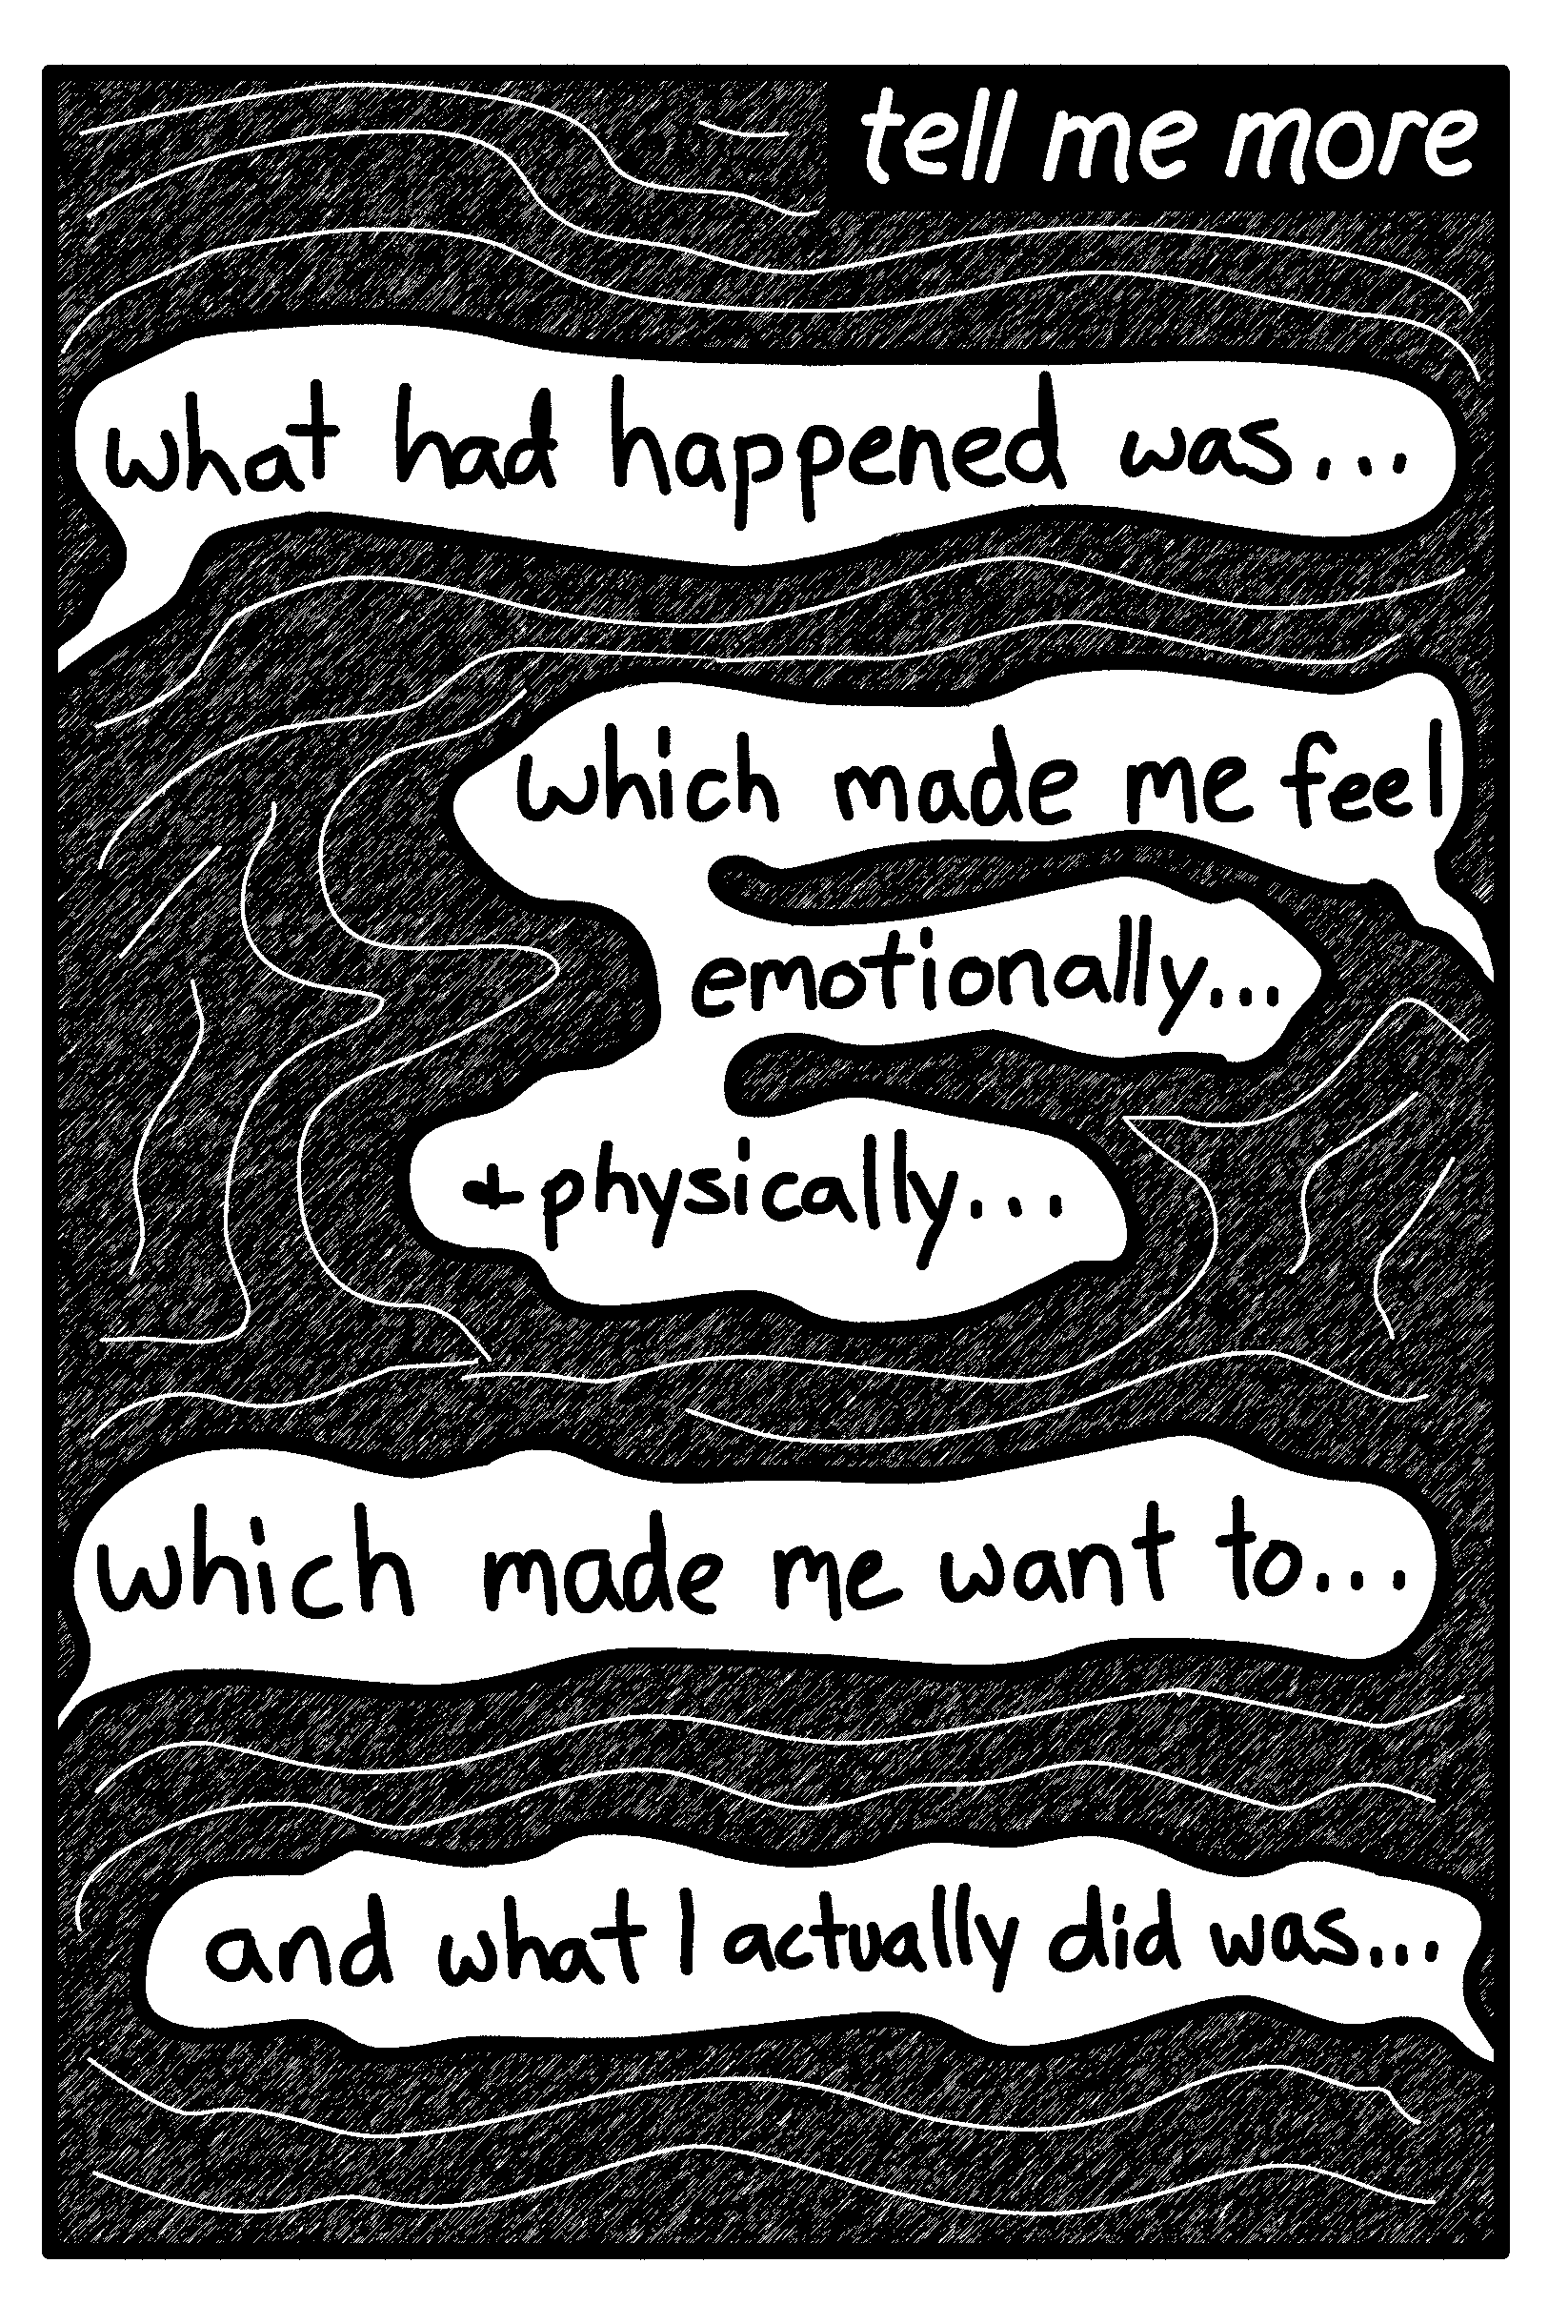 page 3bw.png